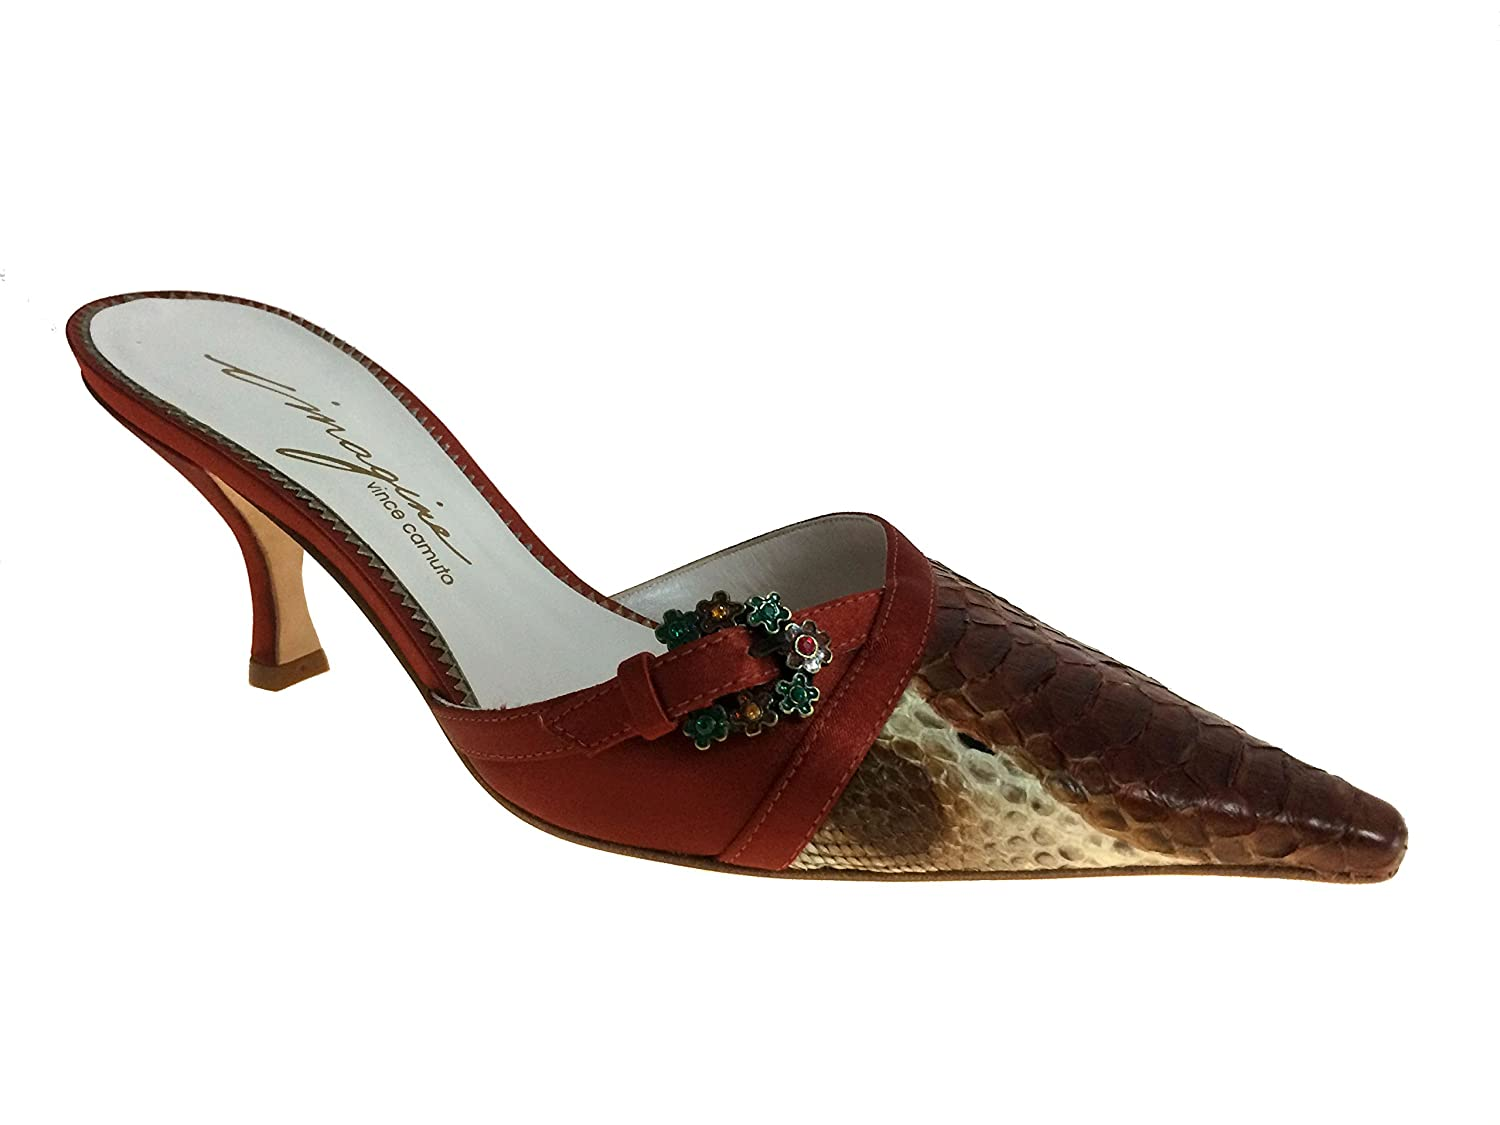 Imagine Vince Camuto Rochelle Brick Snake Womens Shoes Size 6